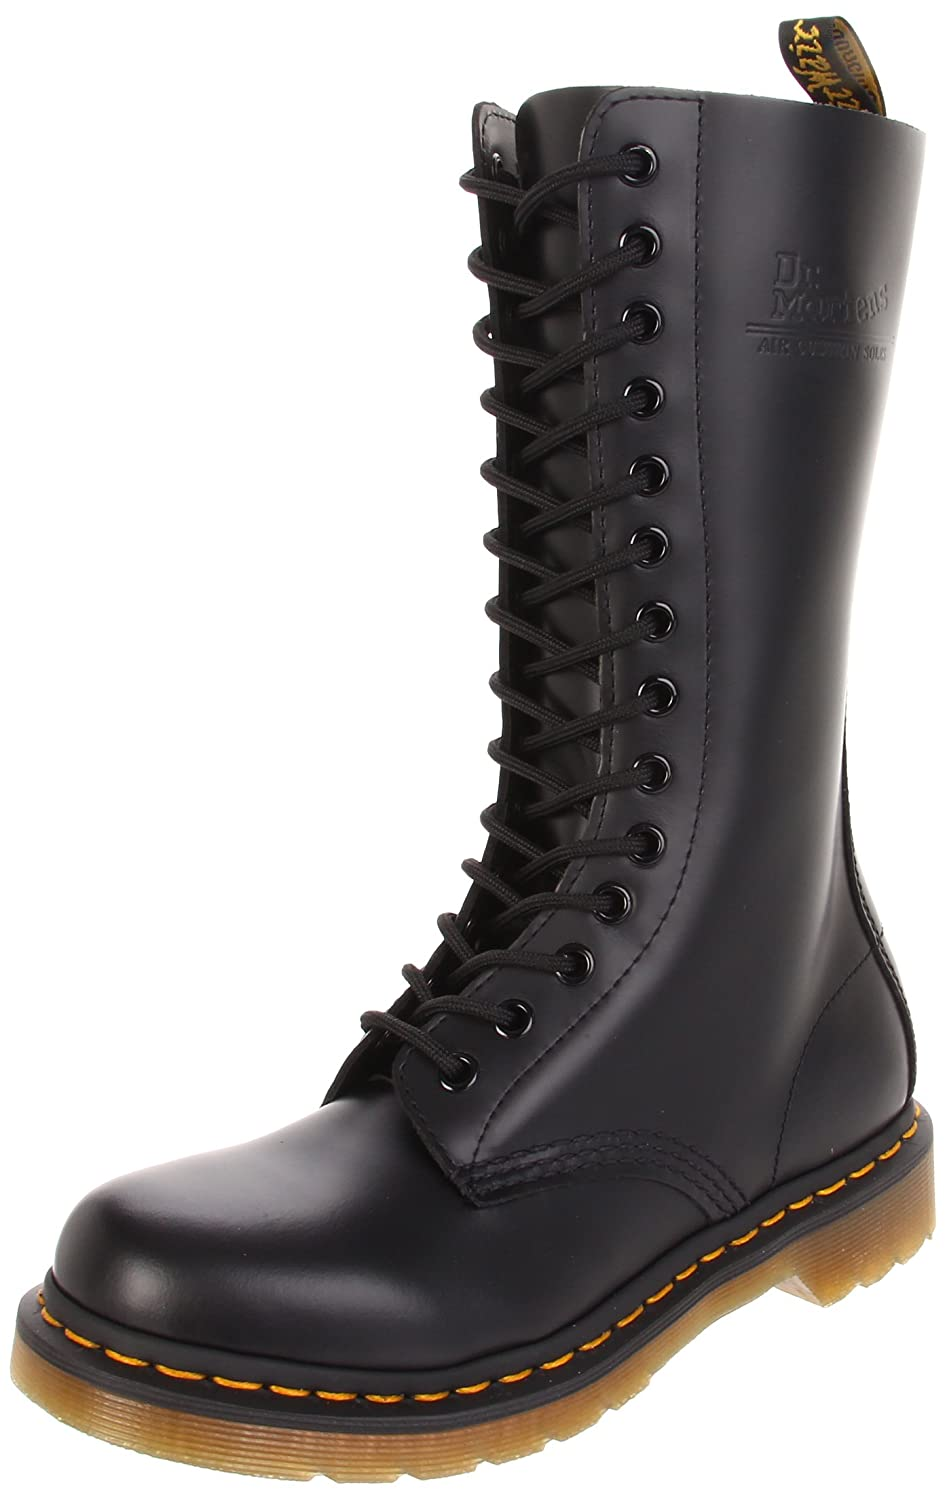 Dr. Martens Original 14 Eye Boot